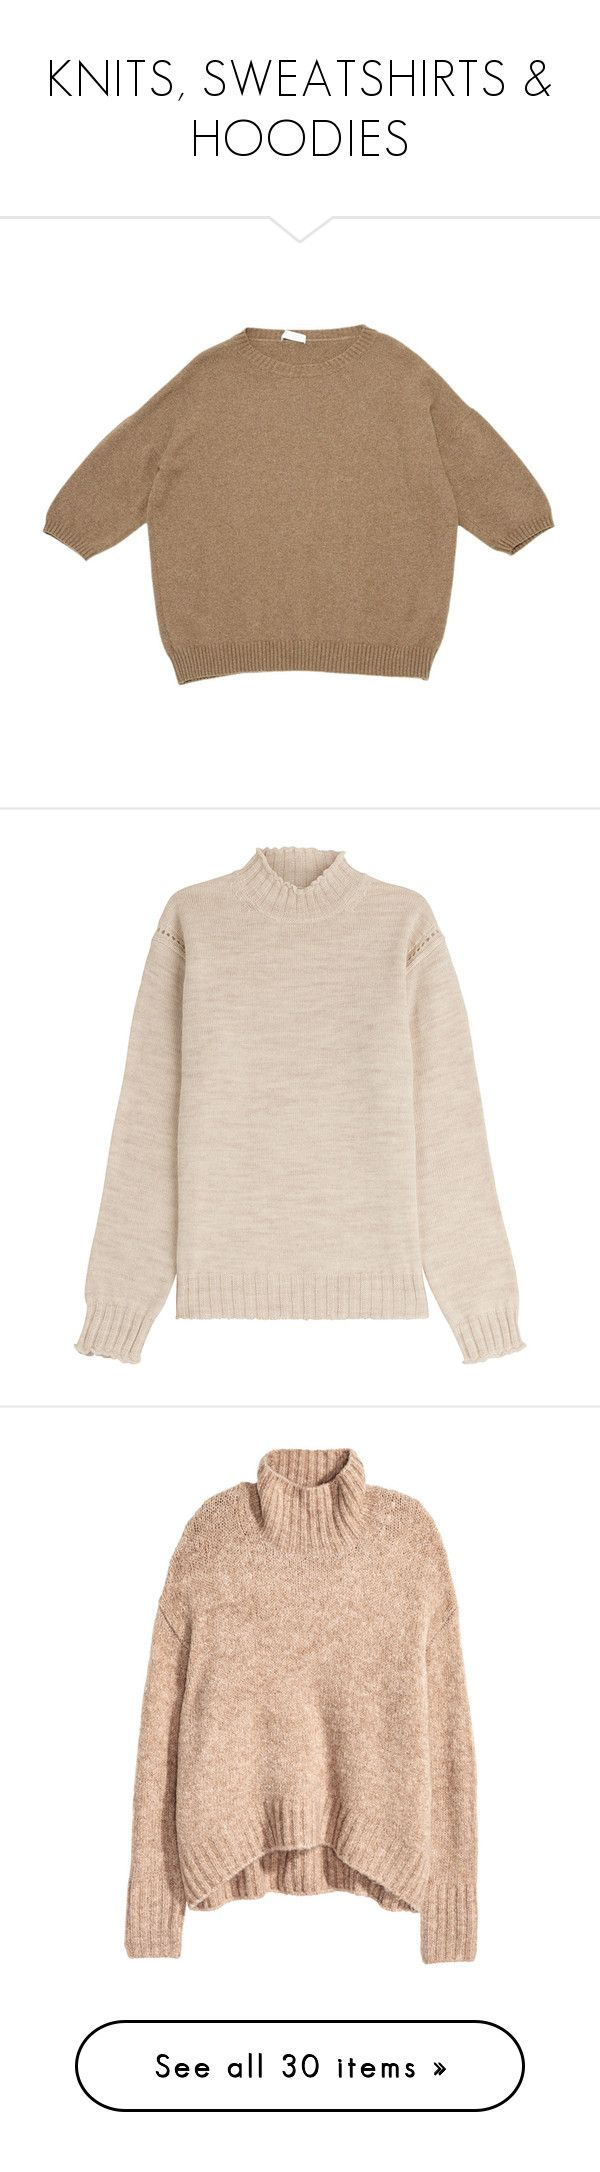 """KNITS, SWEATSHIRTS & HOODIES"" by mydntkrl ❤ liked on Polyvore featuring tops, sweaters, brown, women clothing knitwear, wool cashmere sweater, jumper top, knitwear sweater, cashmere jumpers, brown top and jumper"